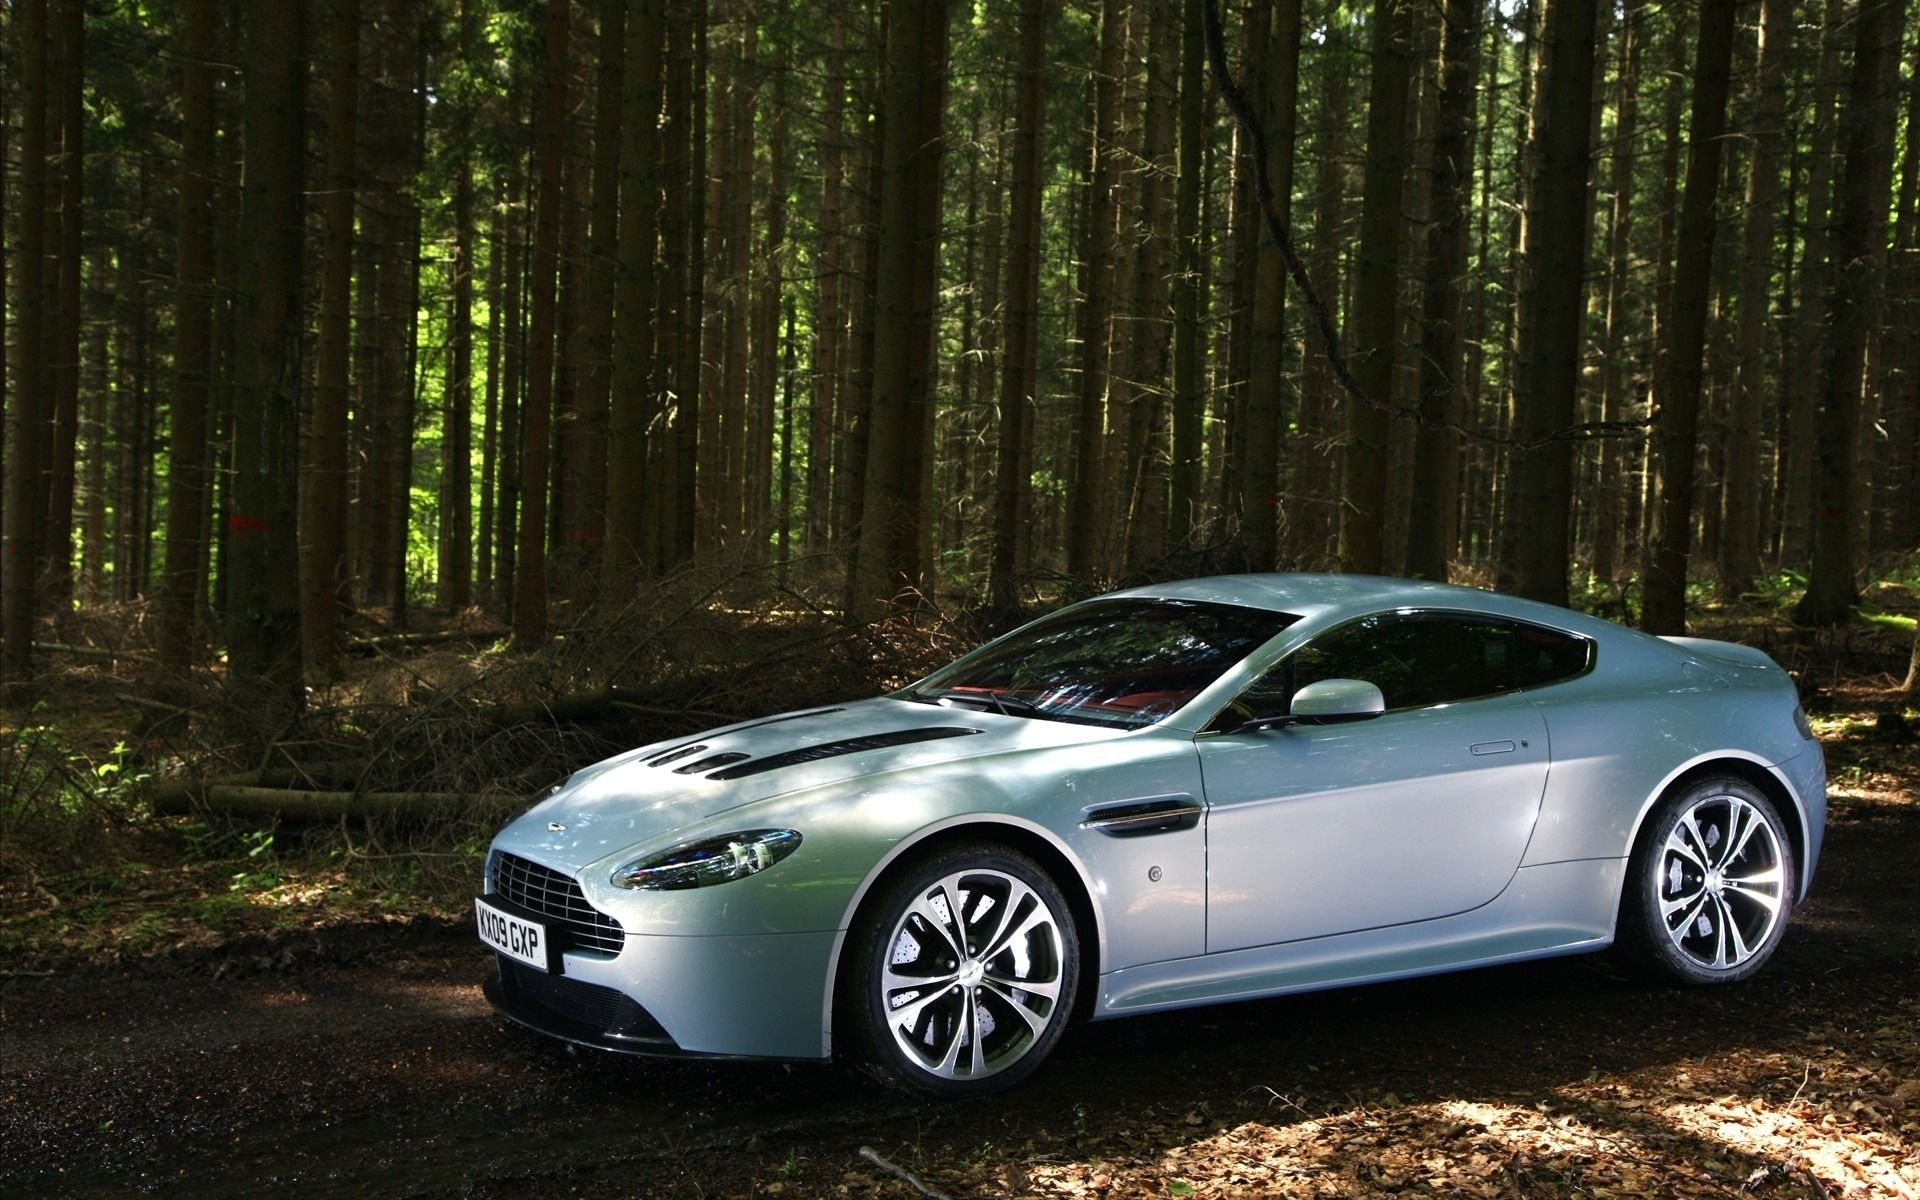 Aston Martin V12 Vantage wallpapers and image